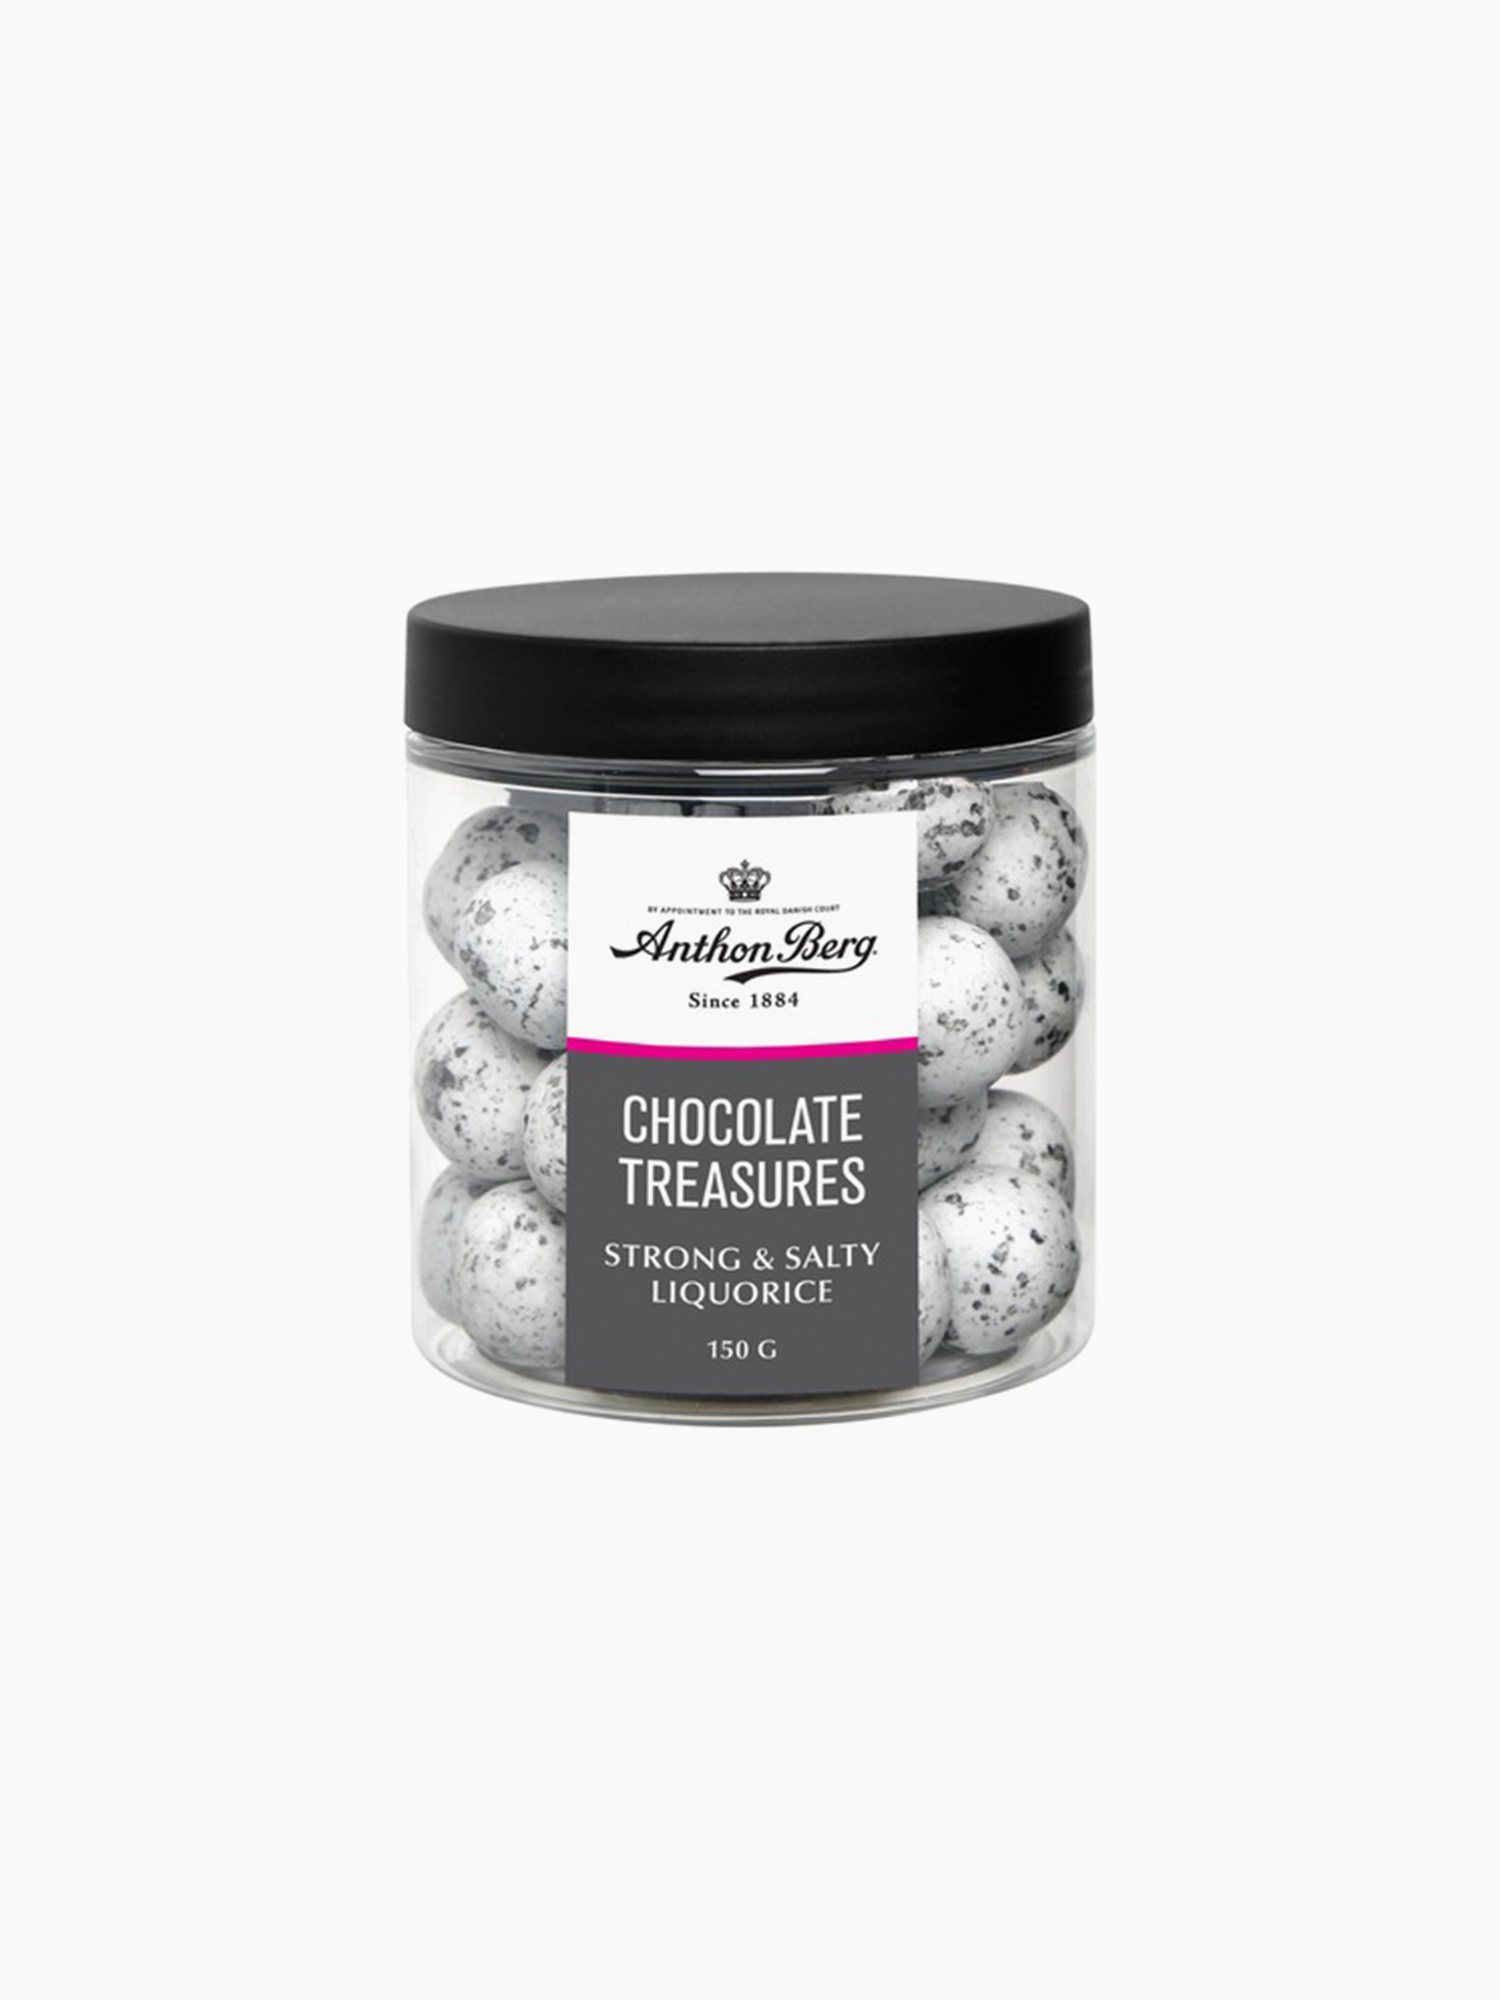 Anthon Berg Chocolate Treasures Strong & Salty liquorice 150g